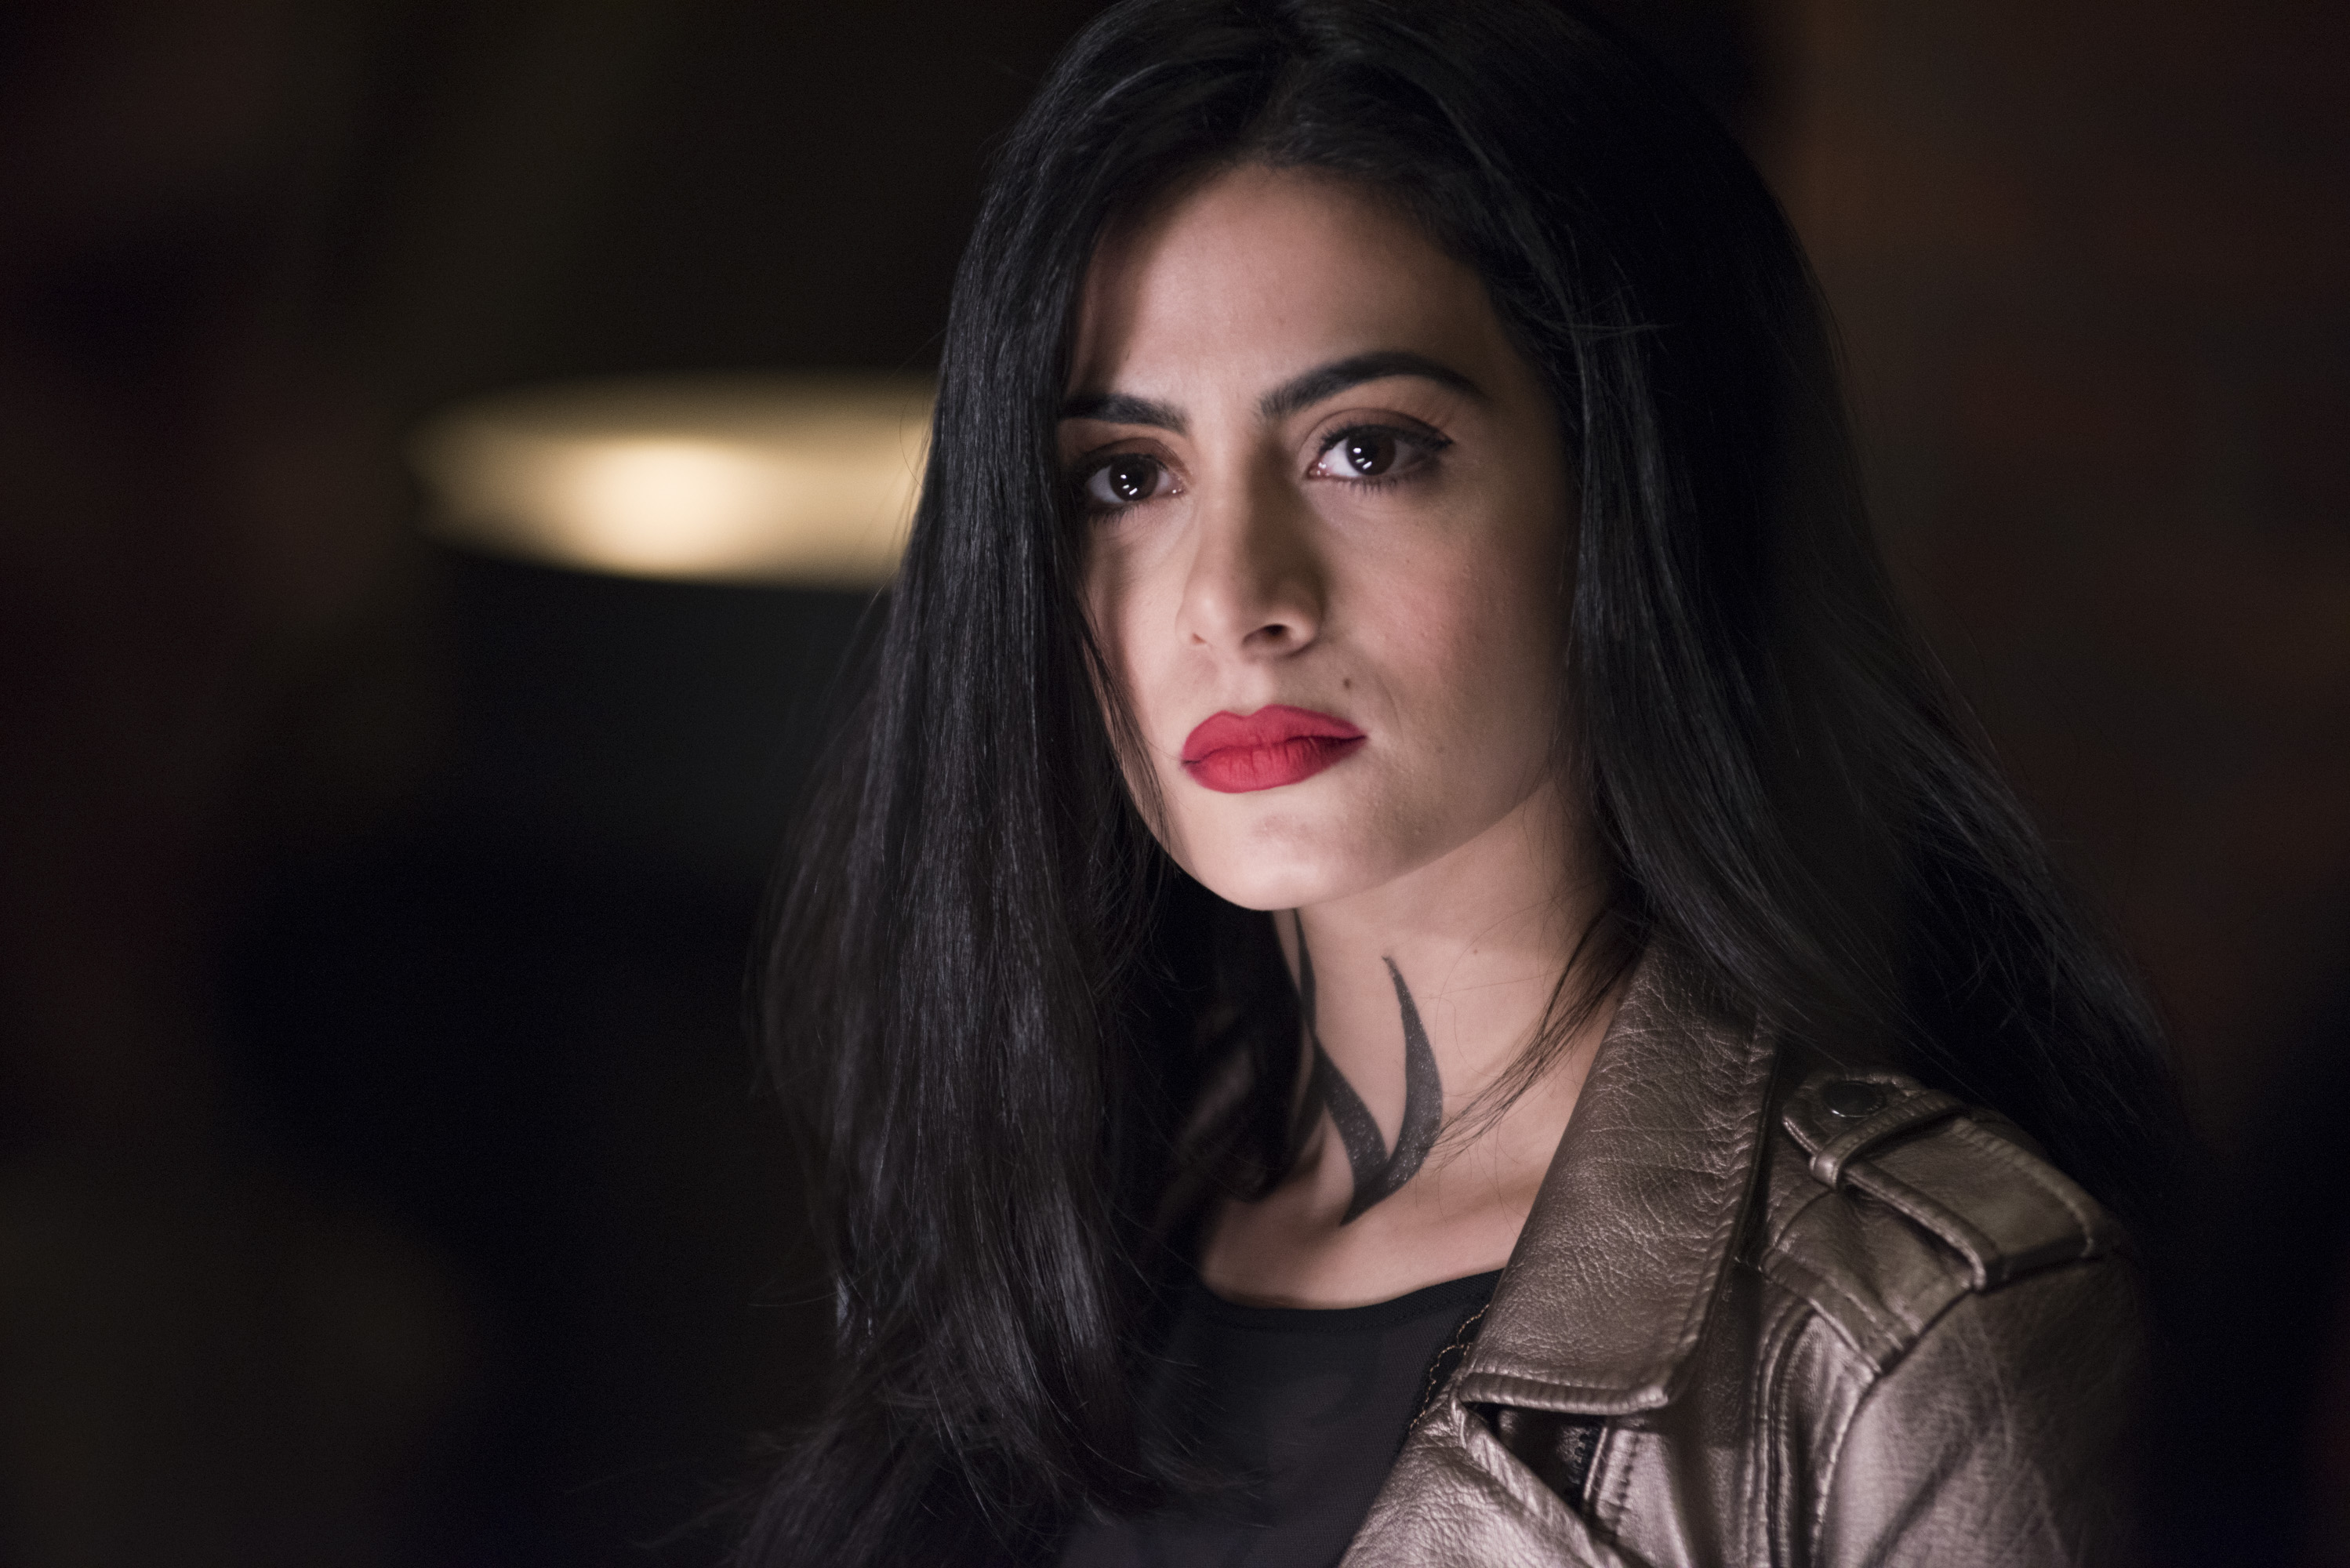 Alisha Wainwright Lethal Weapon isabelle lightwood | shadowhunters on freeform wiki | fandom